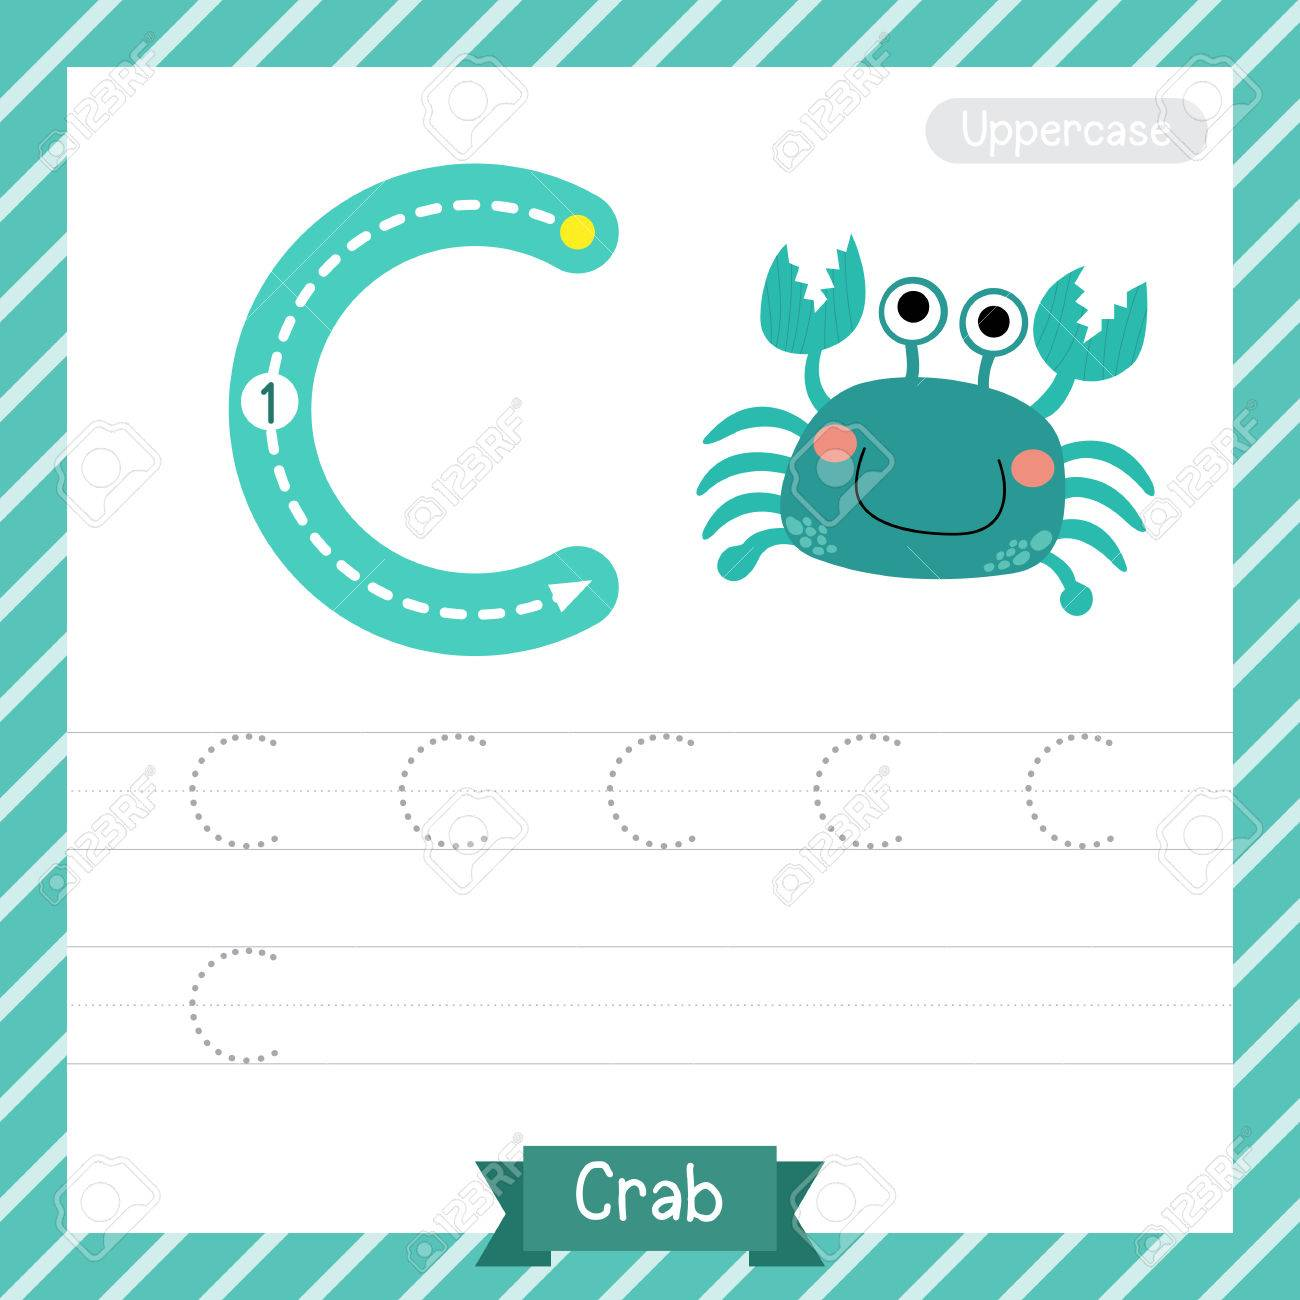 Letter C Uppercase Tracing Practice Worksheet With Crab For Kids ...